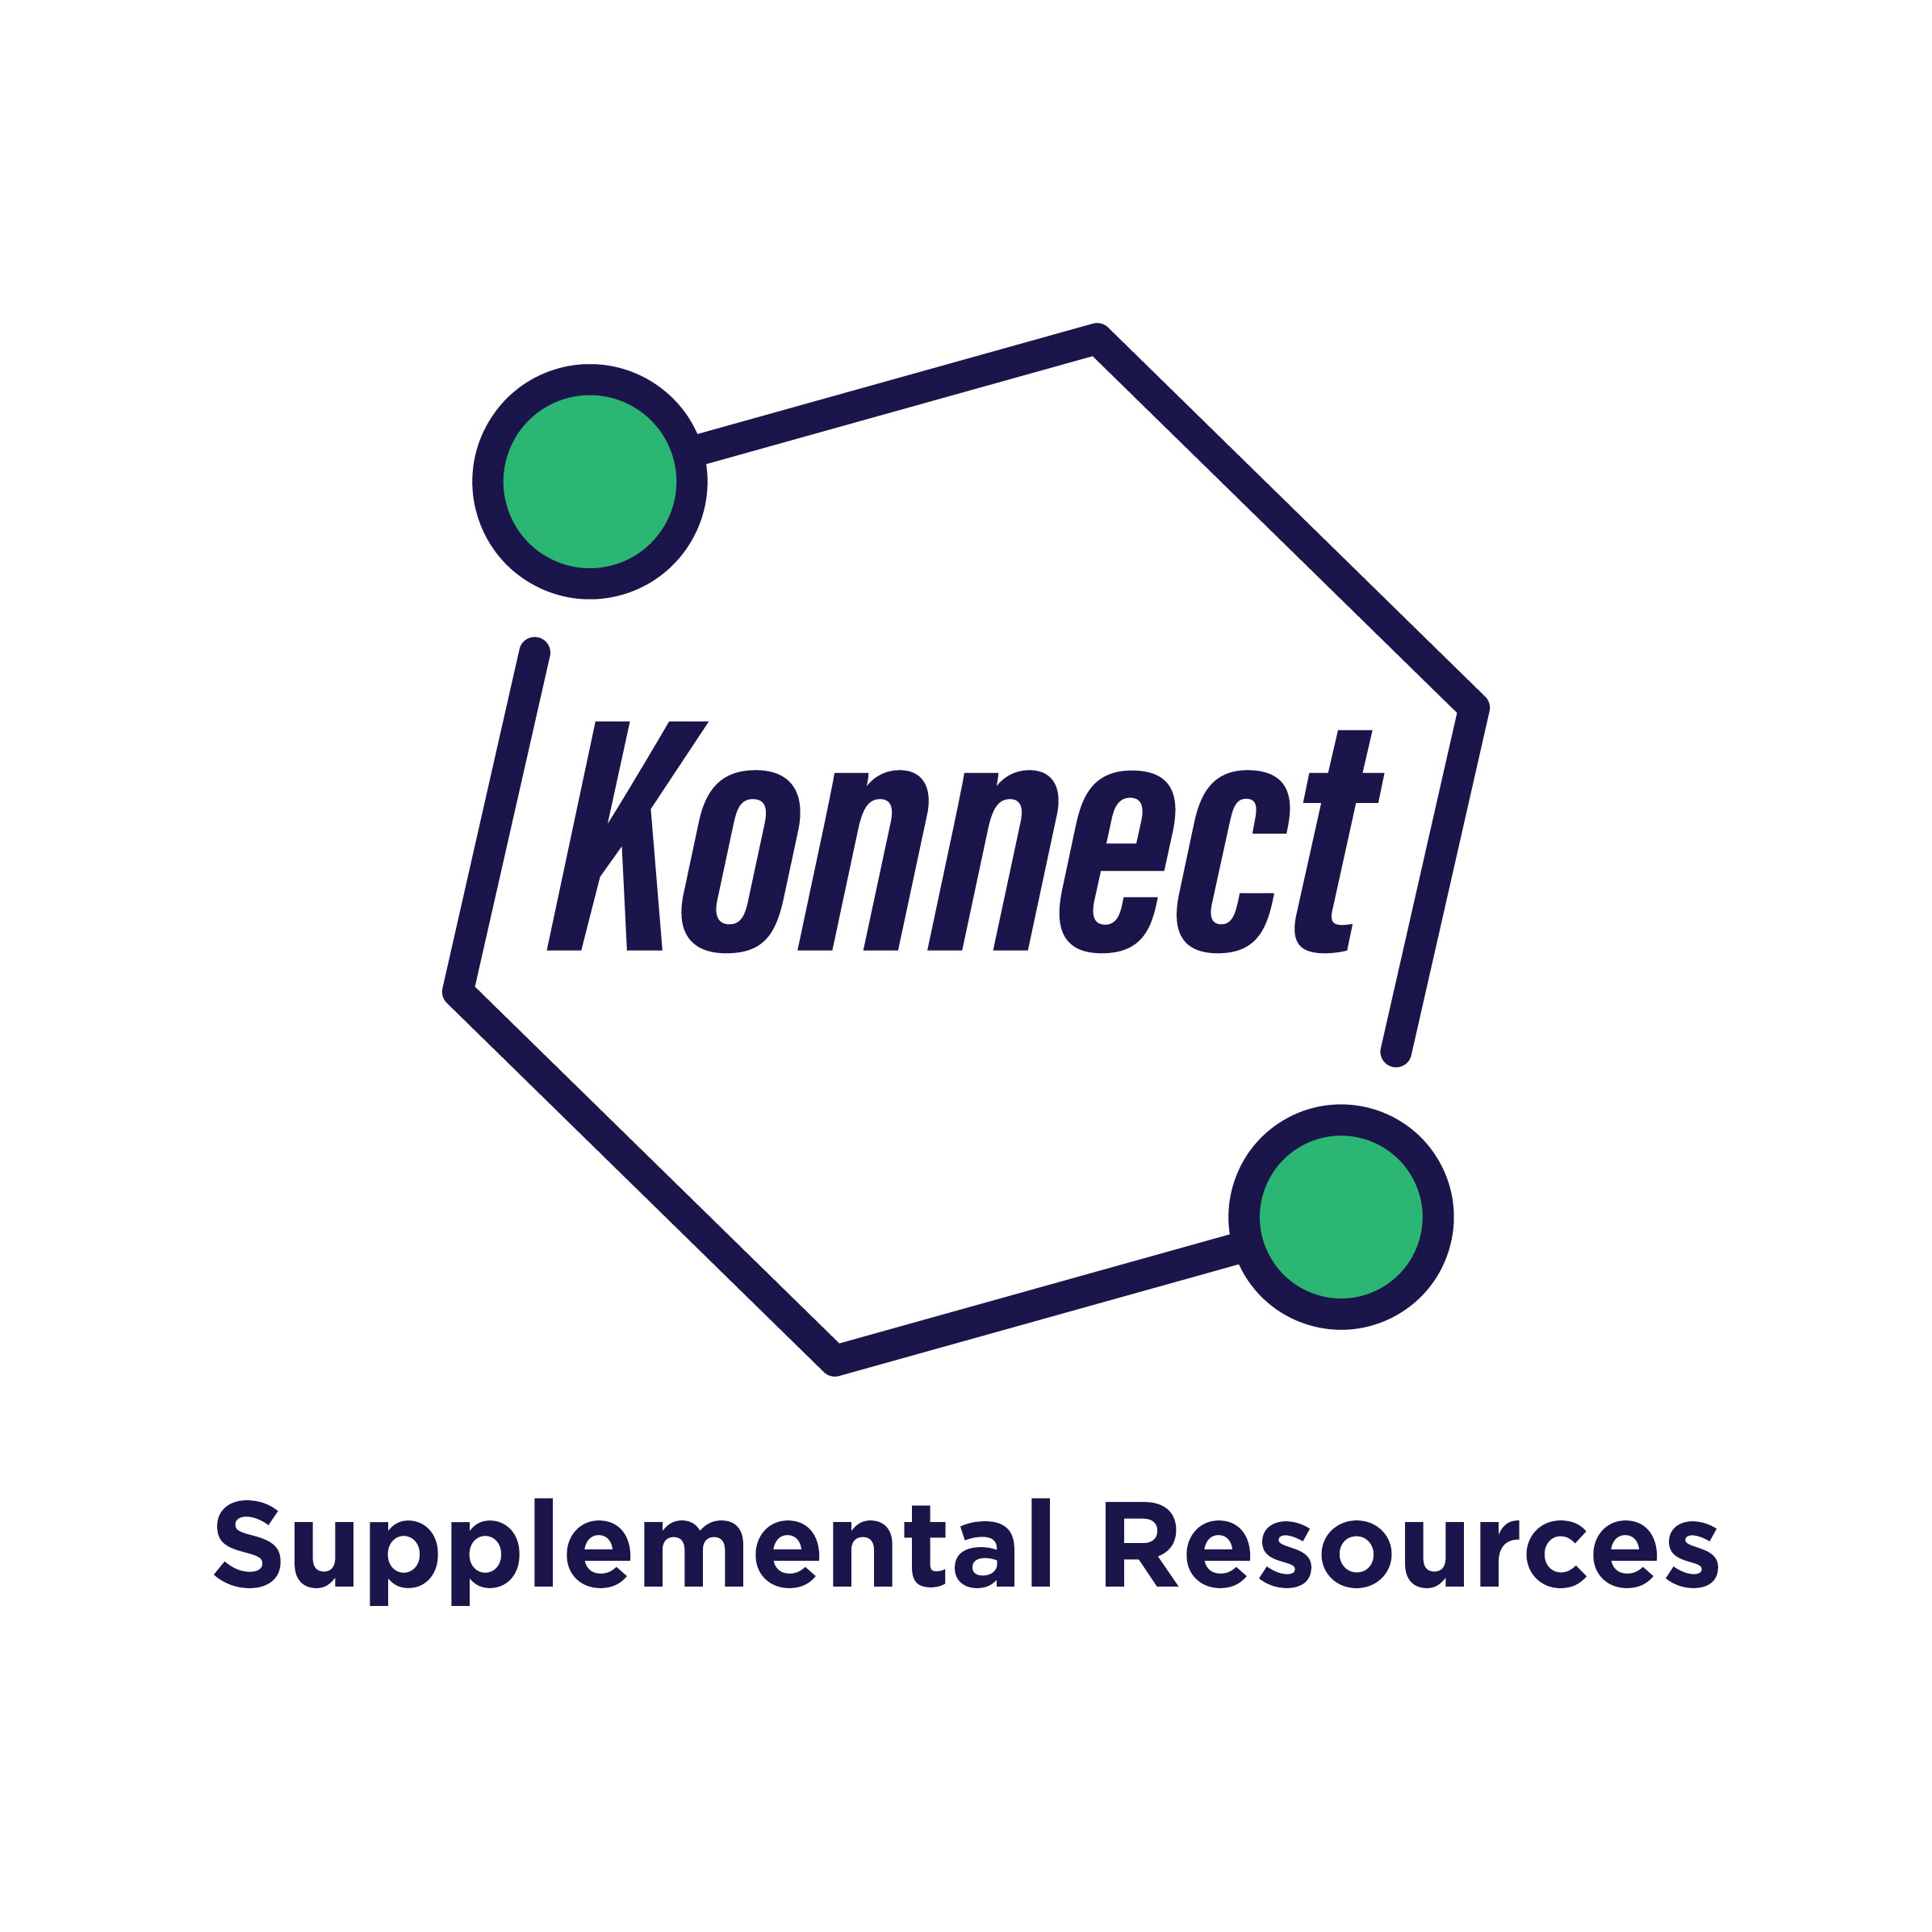 Konnect - Headquarters Supplemental Resources